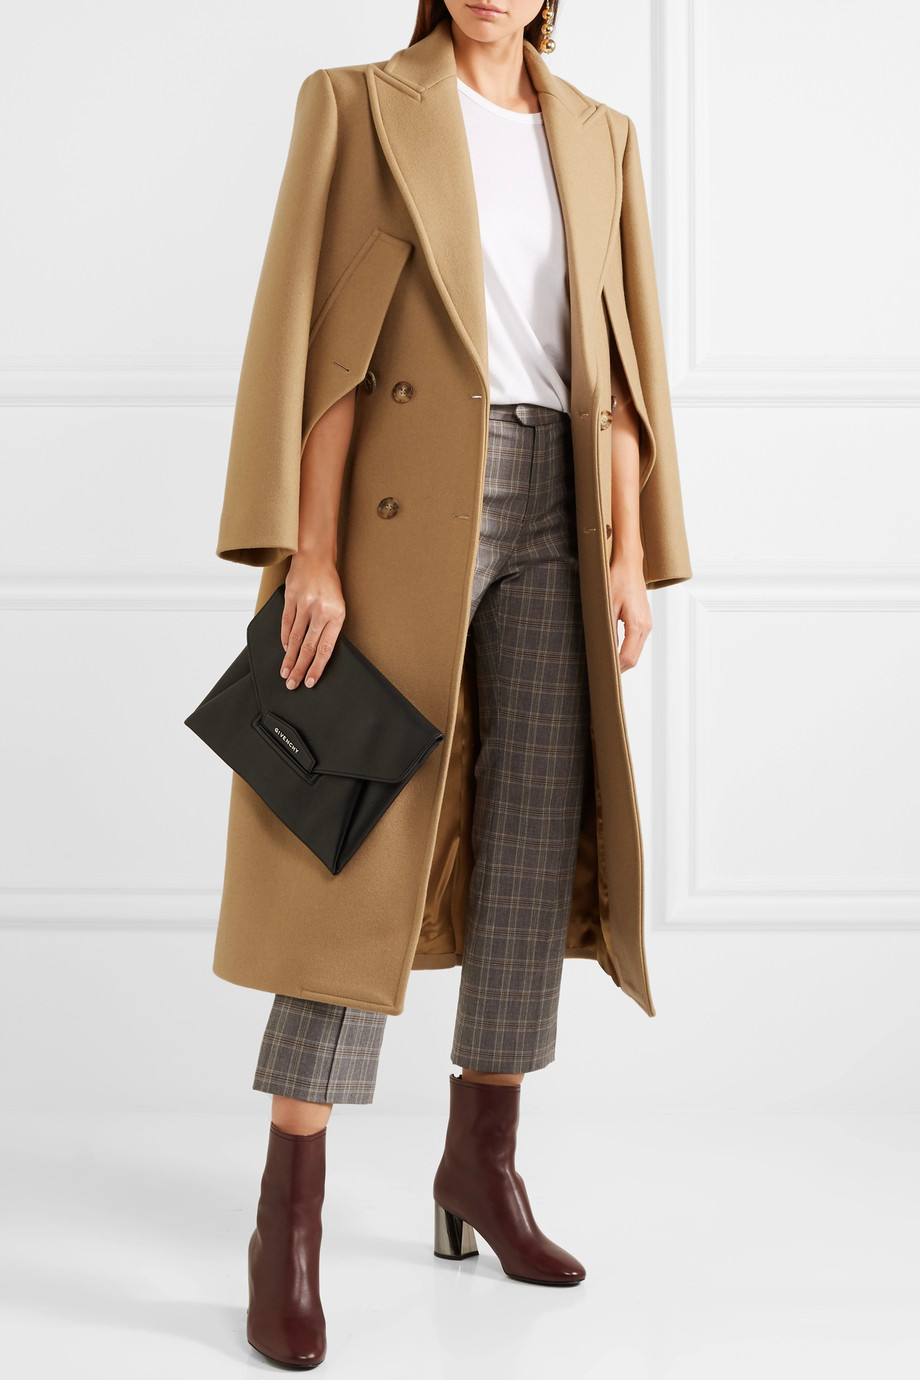 <a href='https://www.net-a-porter.com/hu/en/product/931517/michael_kors_collection/double-breasted-wool-coat' target='_blank' rel='noopener noreferrer'>Michael Kors Collection</a></p>